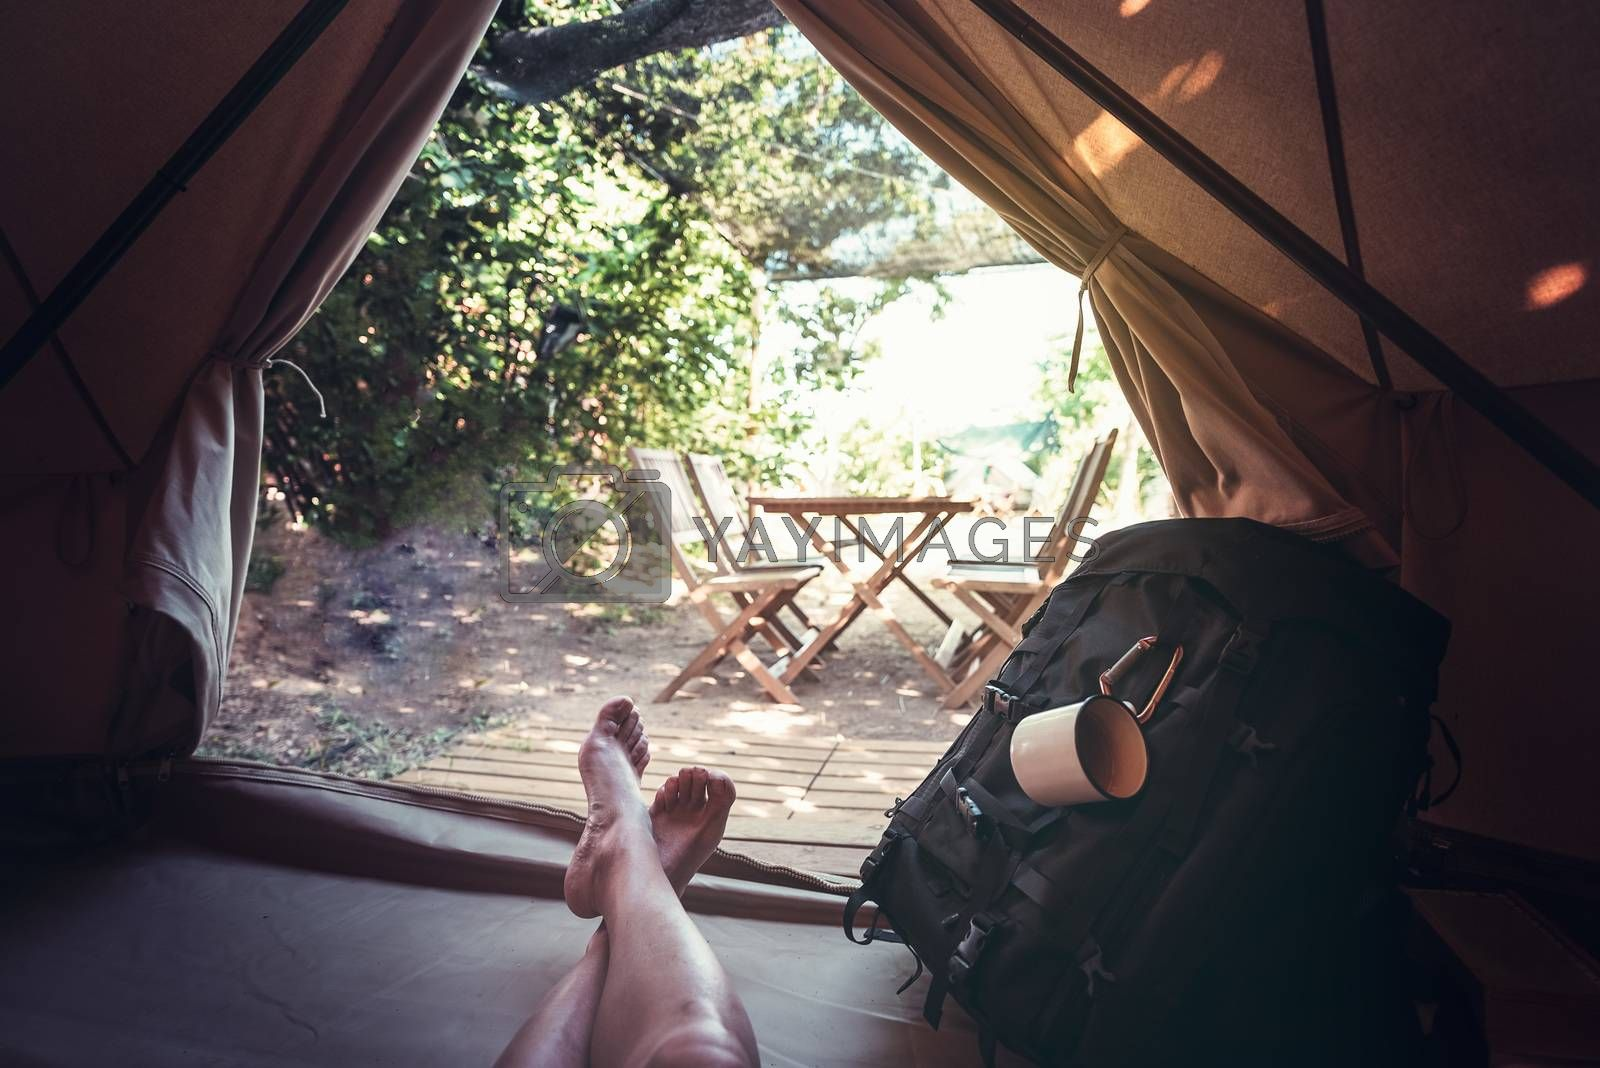 view of crossed feet of a hiker person resting barefoot in a camping tent, travel discovery concept, point of view shot